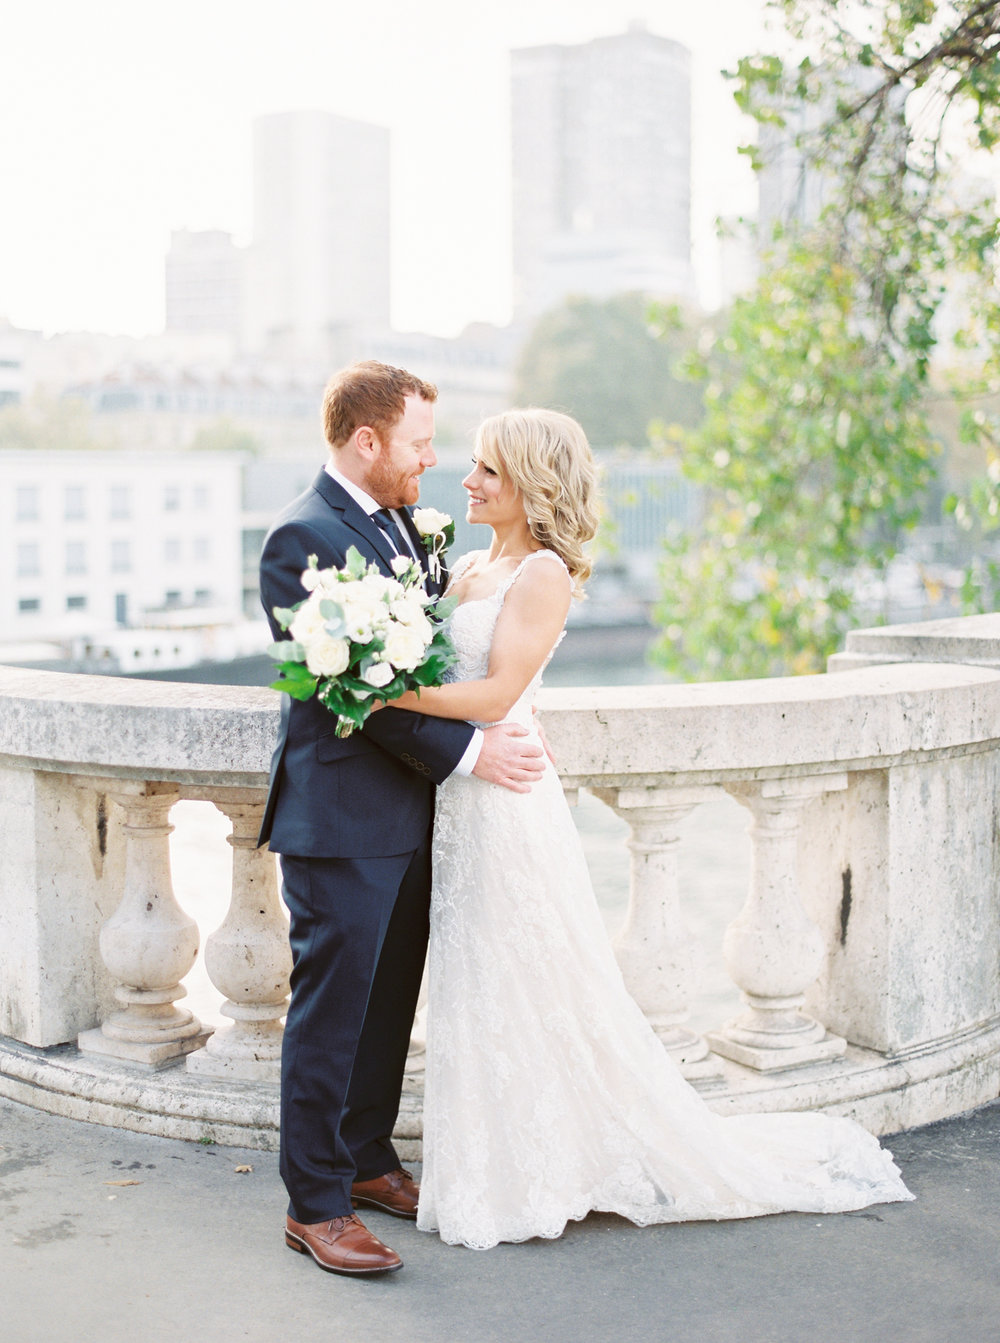 Paris Wedding Photographer - Niagara Wedding Photographer